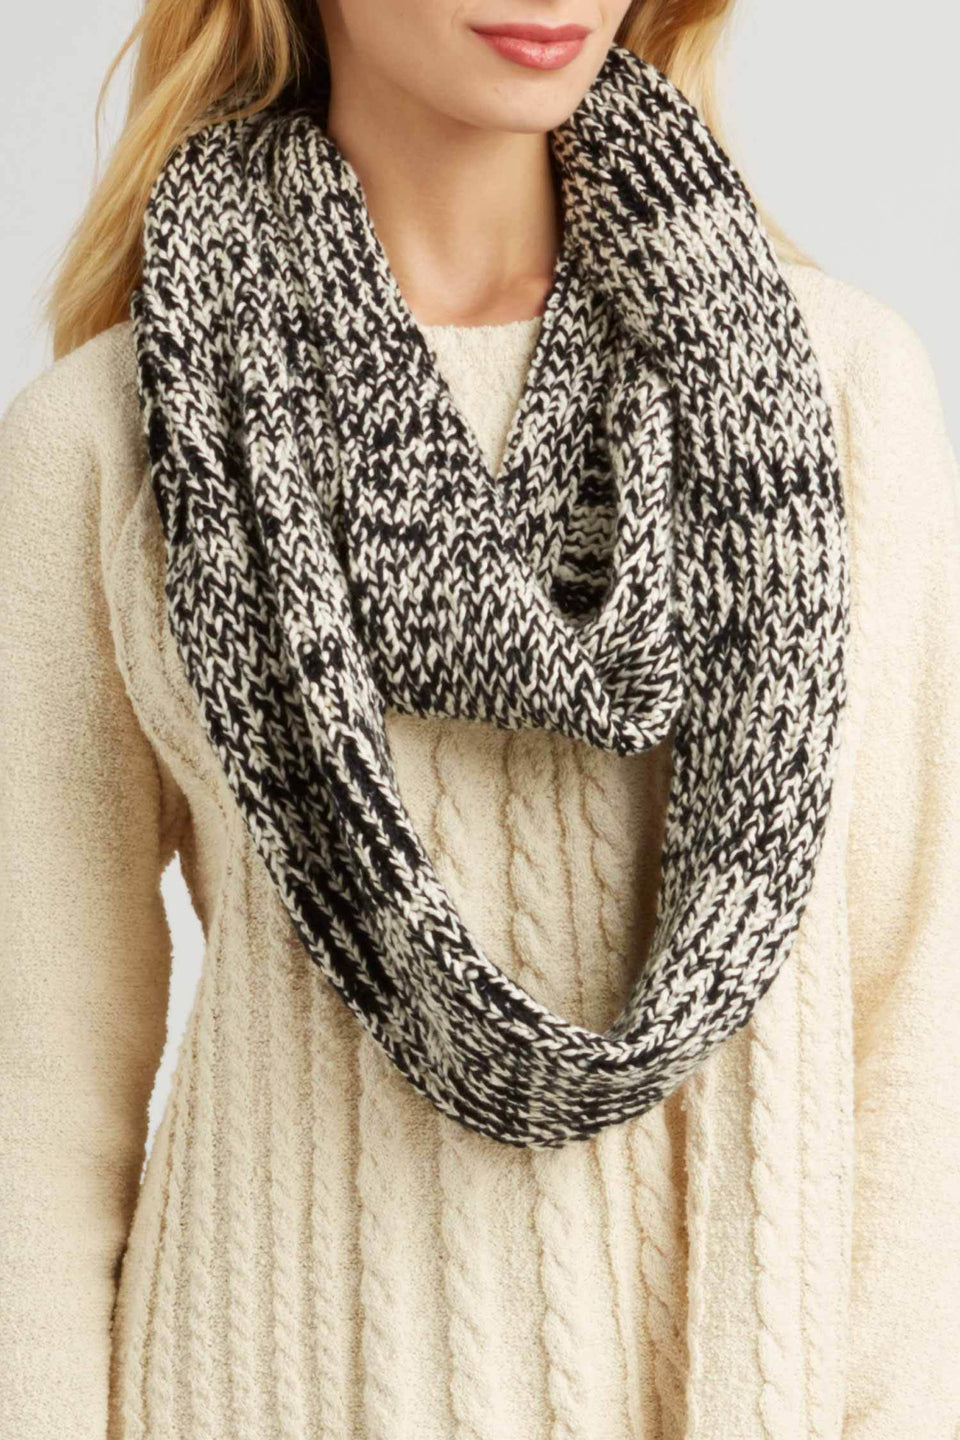 Luxe Infinity Scarf in Ivory and Black